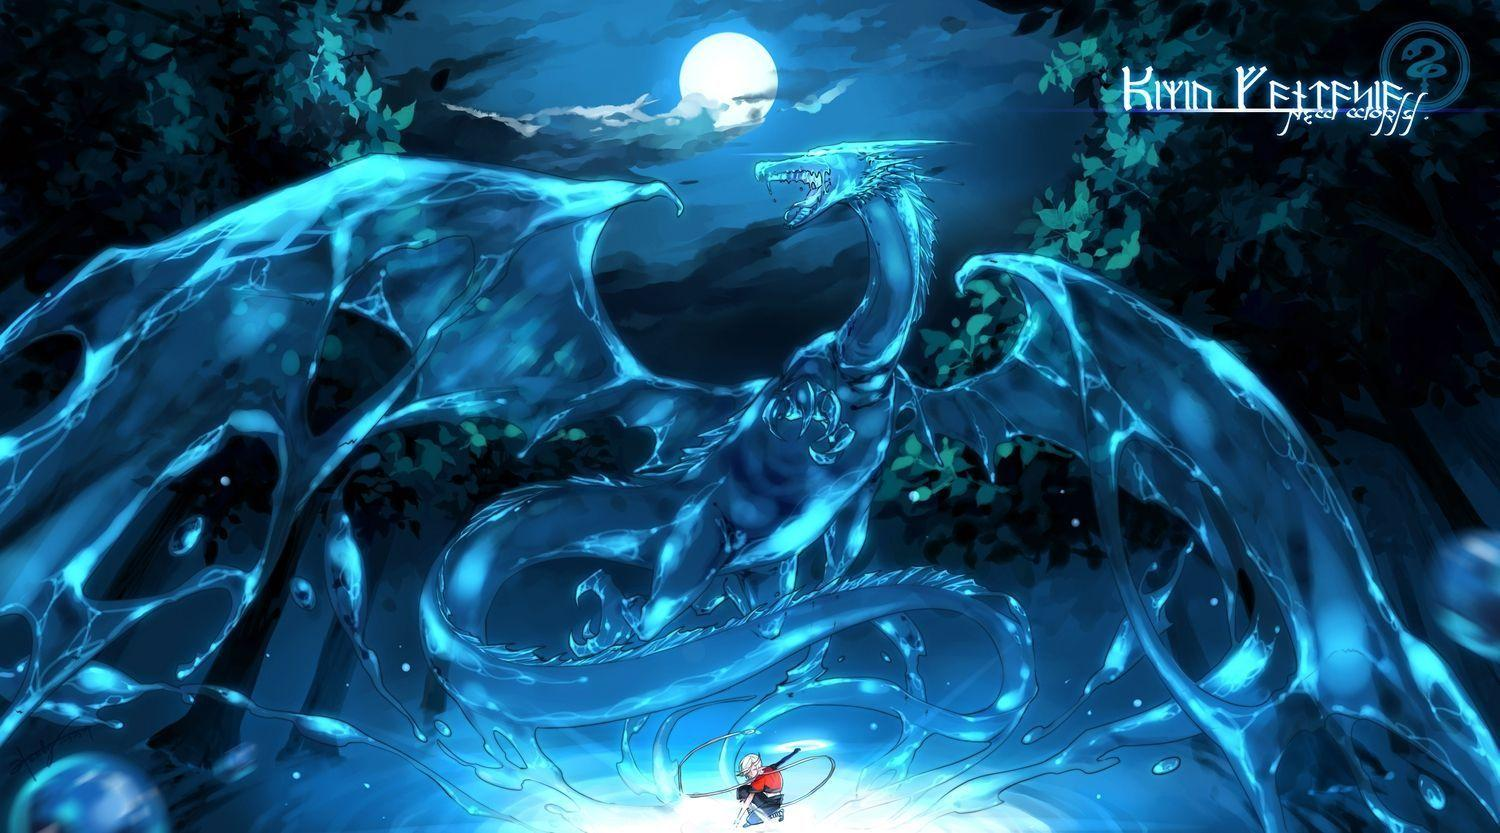 Water dragon wallpapers wallpaper cave for Green monster fishing light